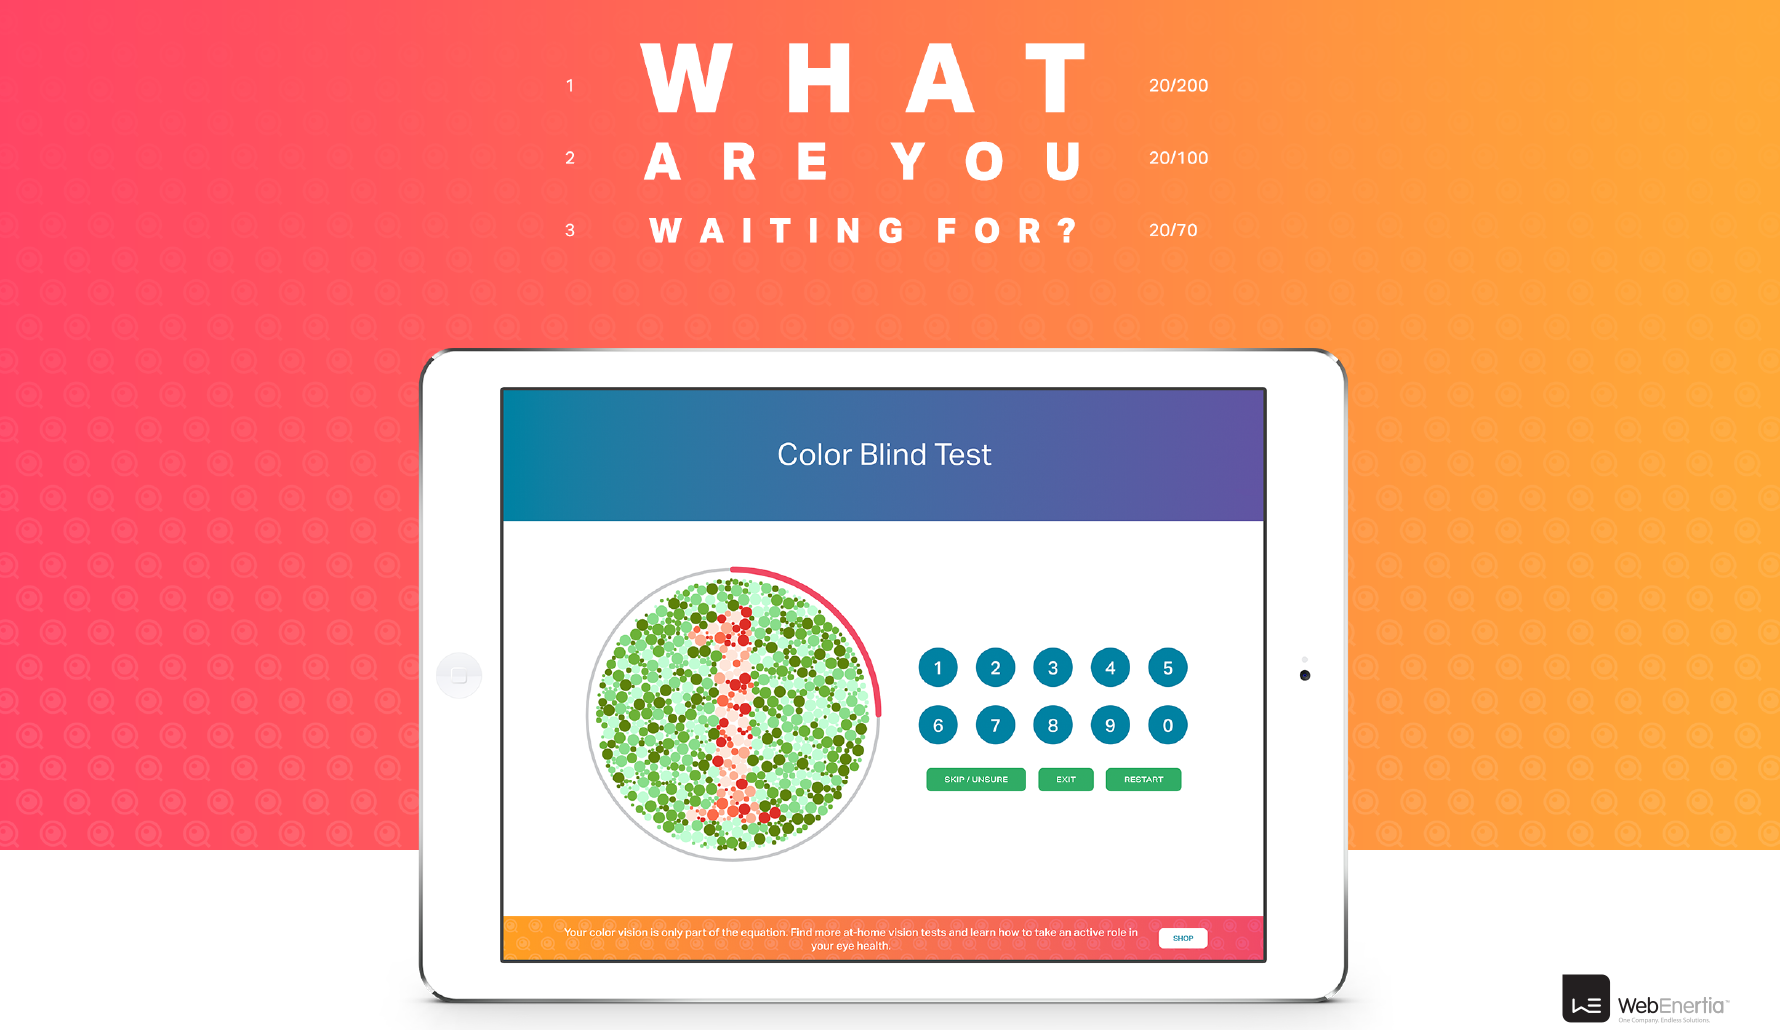 Eyeque Website Redesign color blind test on iPad